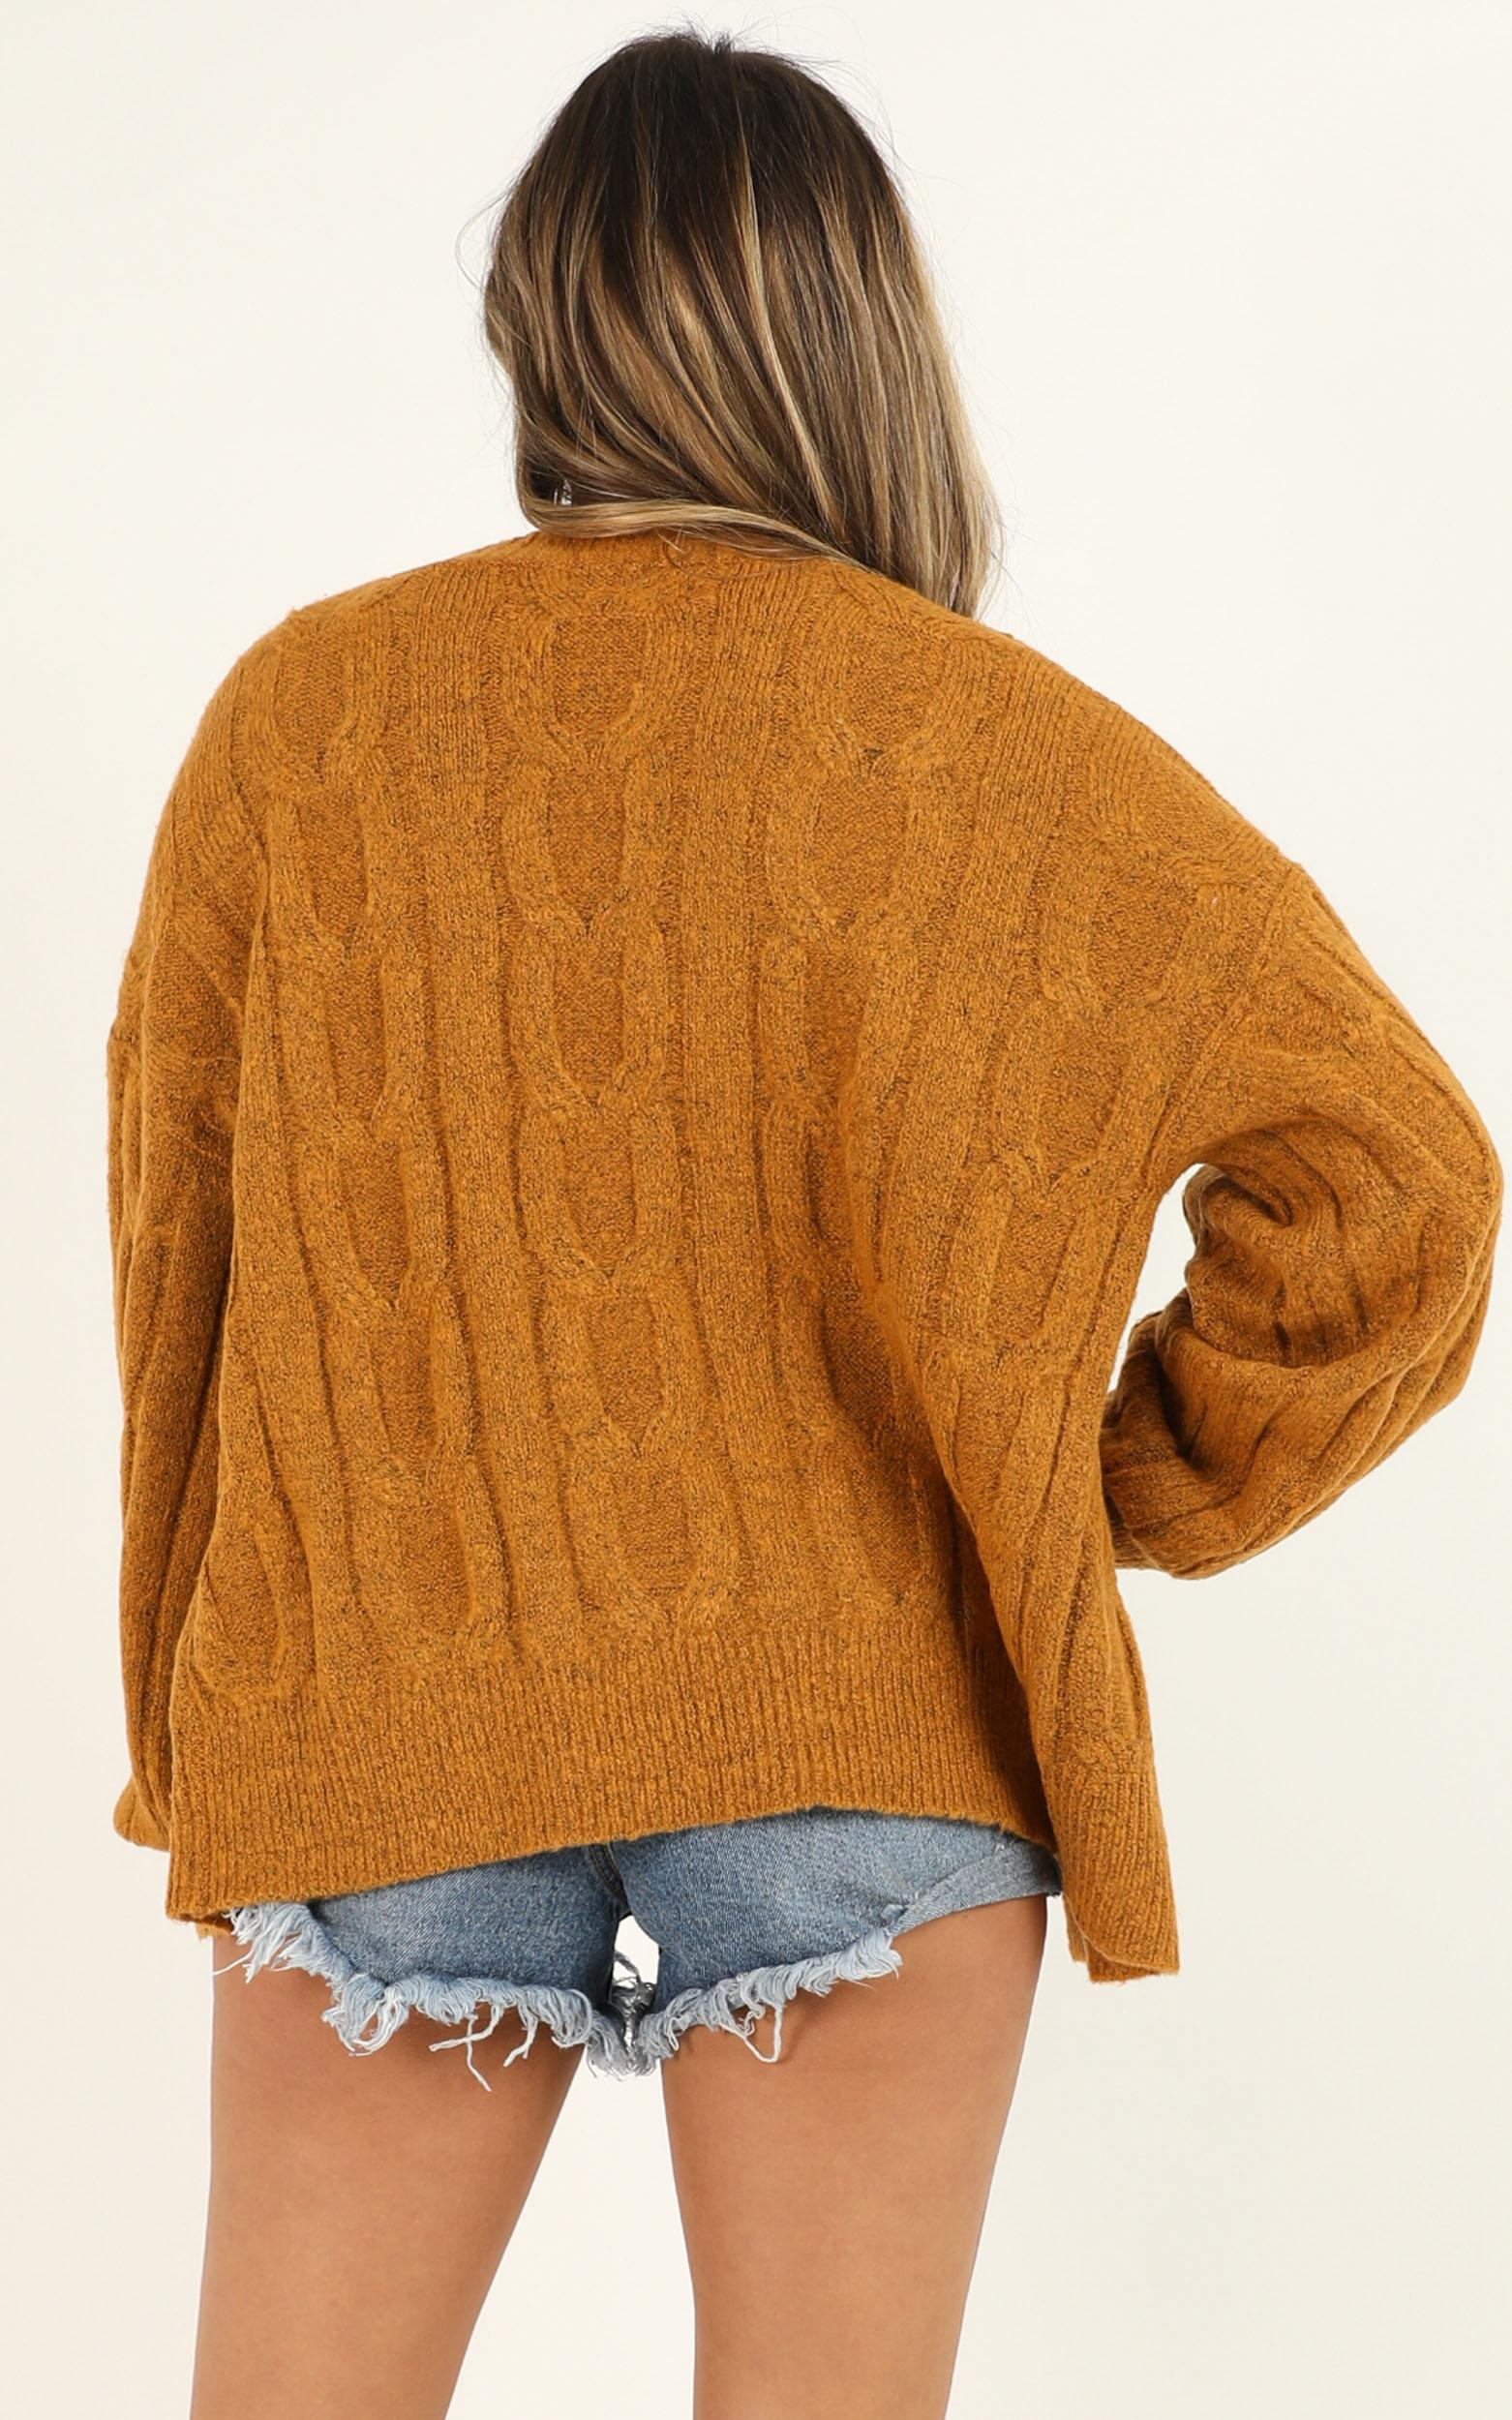 Could Tell knit cardigan in mustard - 12 (L), Mustard, hi-res image number null